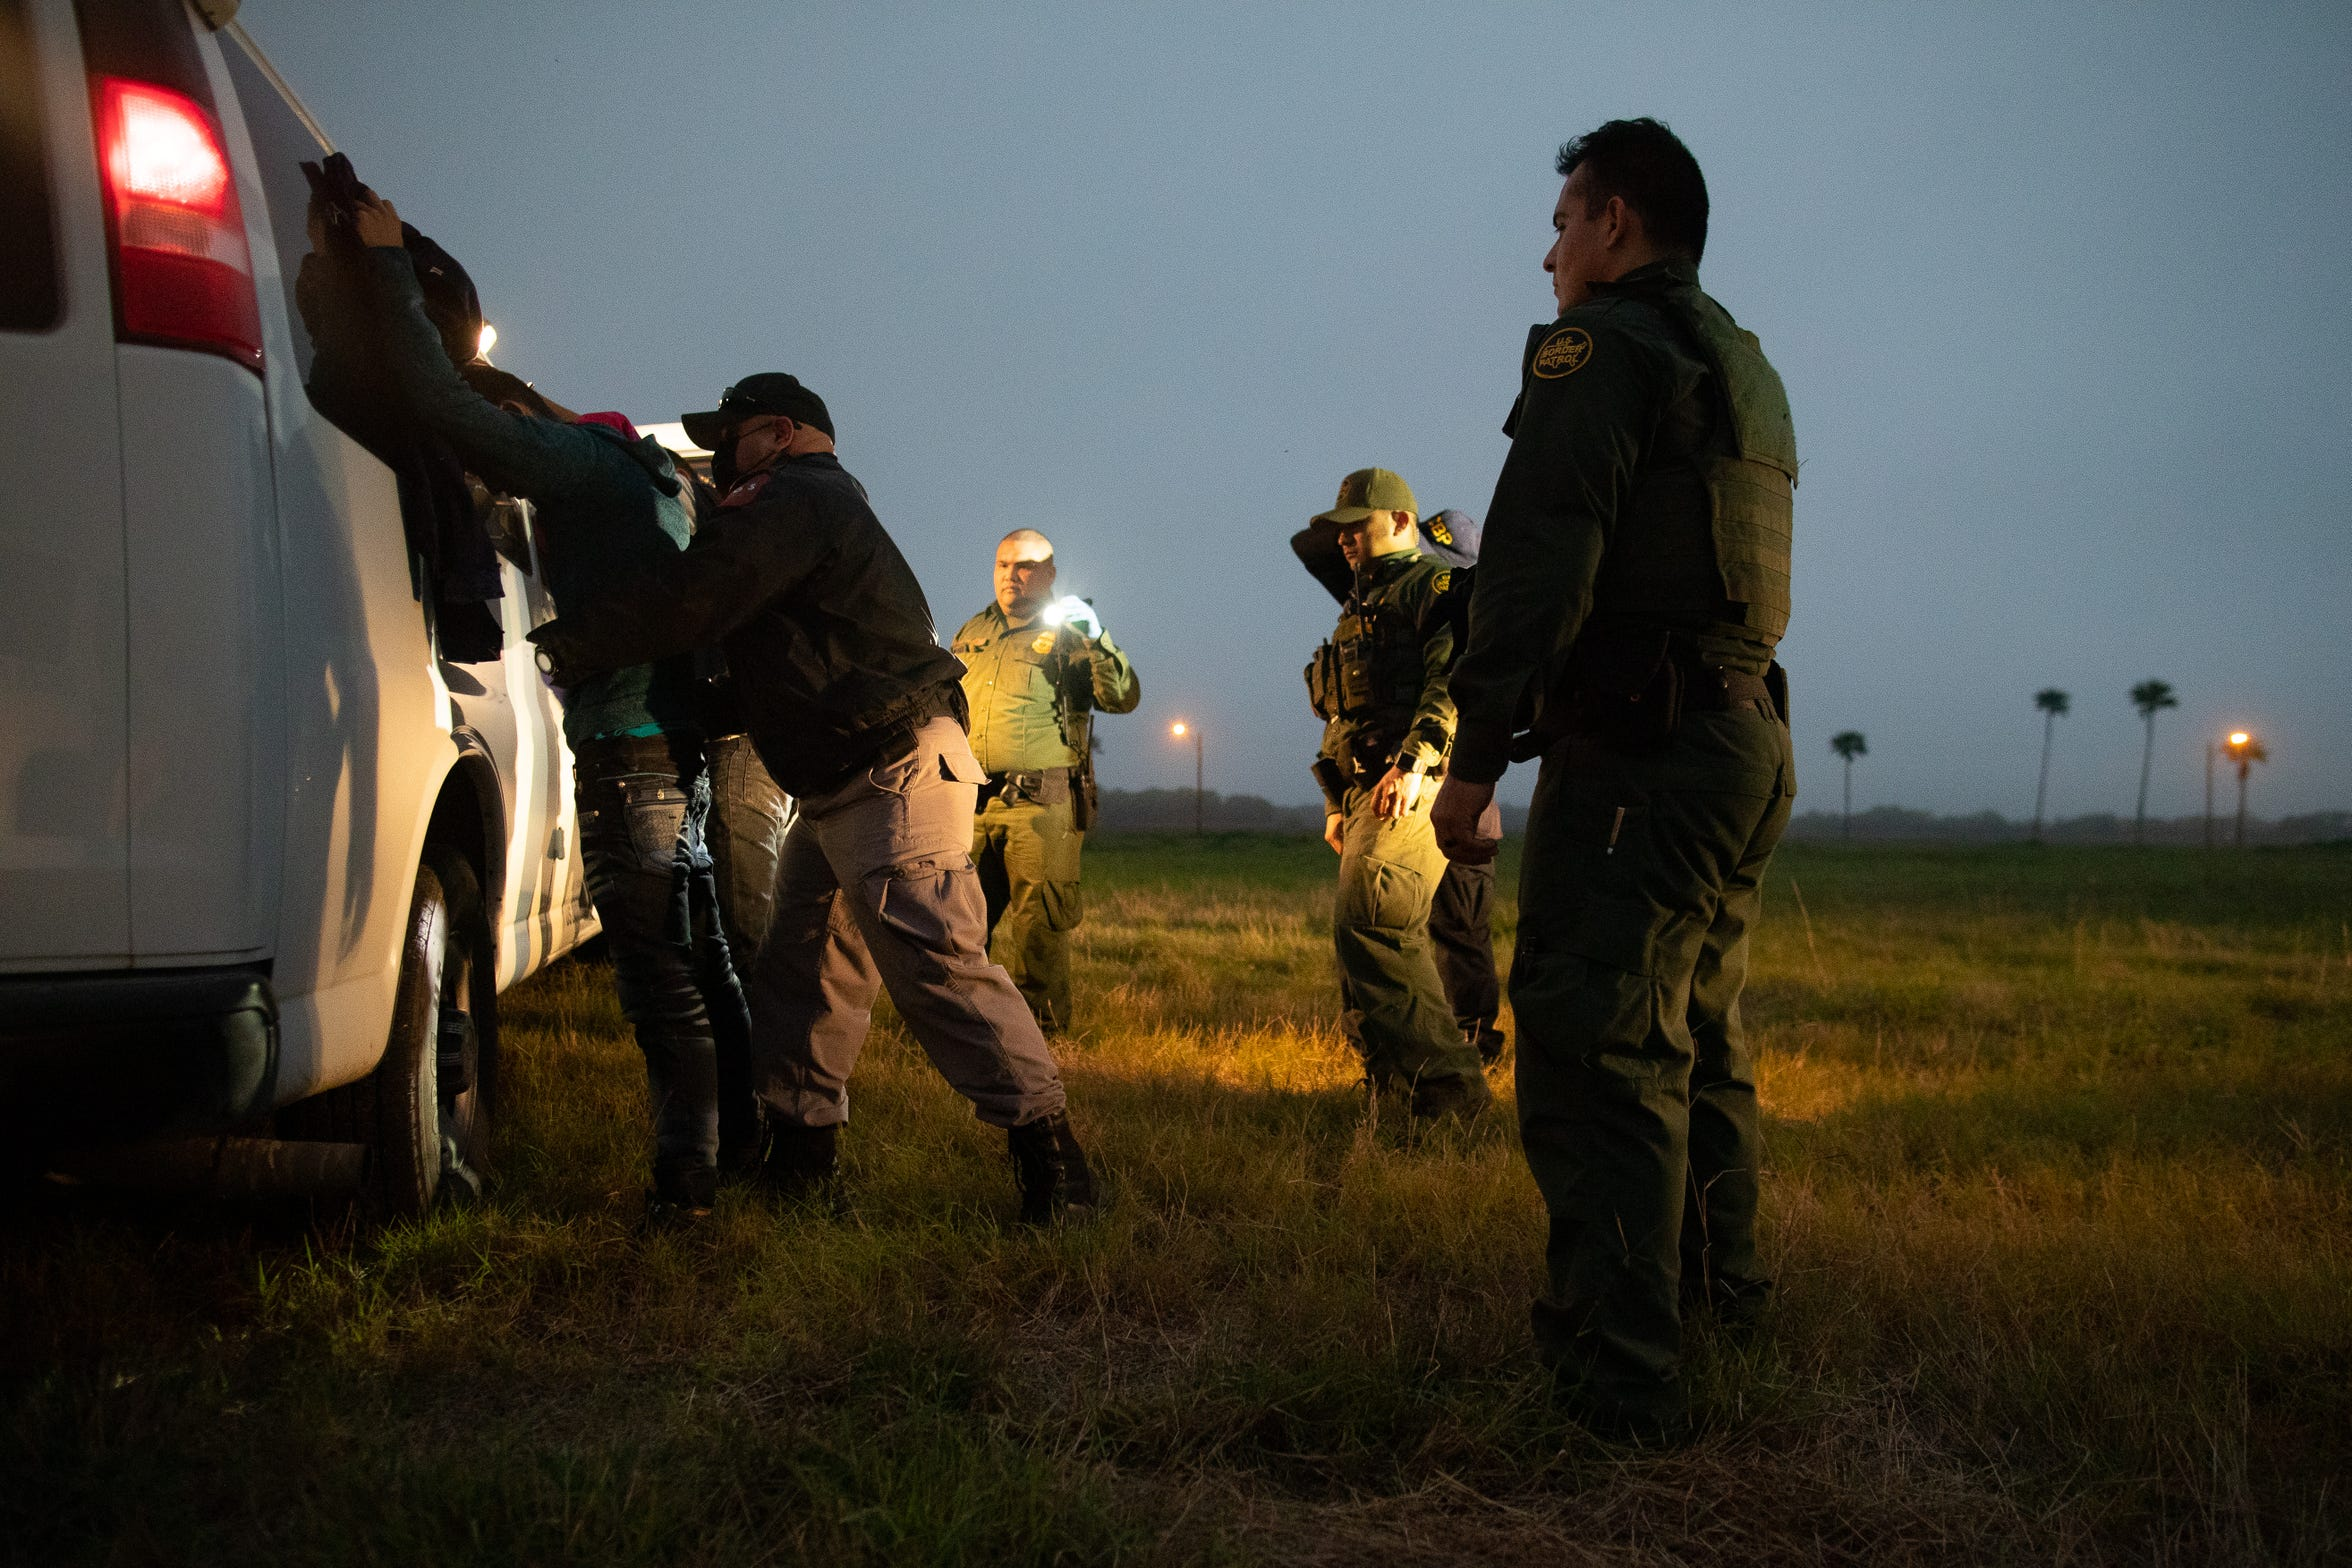 A migrant is searched before being transported after being taken in to custody by Border Patrol near Mission, Texas, after tracking them trough a field on Tuesday, Feb. 29, 2019.